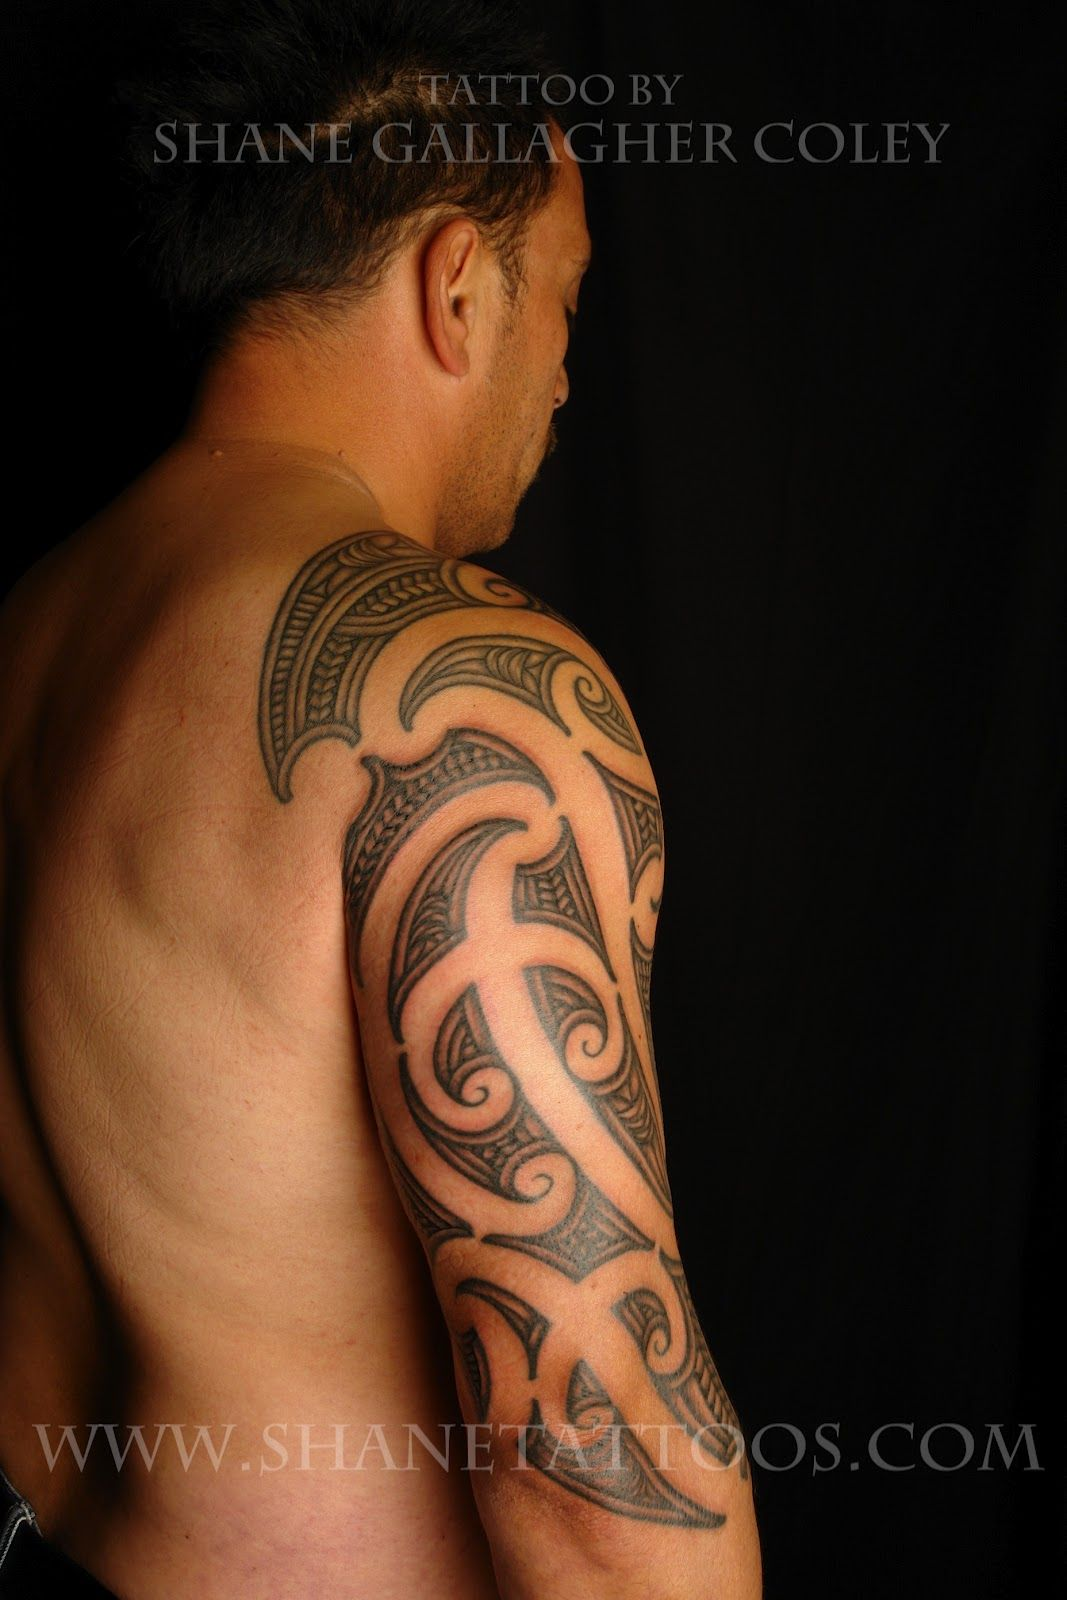 ta moko koru tattoo maori sleeve tattoo ta moko ta. Black Bedroom Furniture Sets. Home Design Ideas